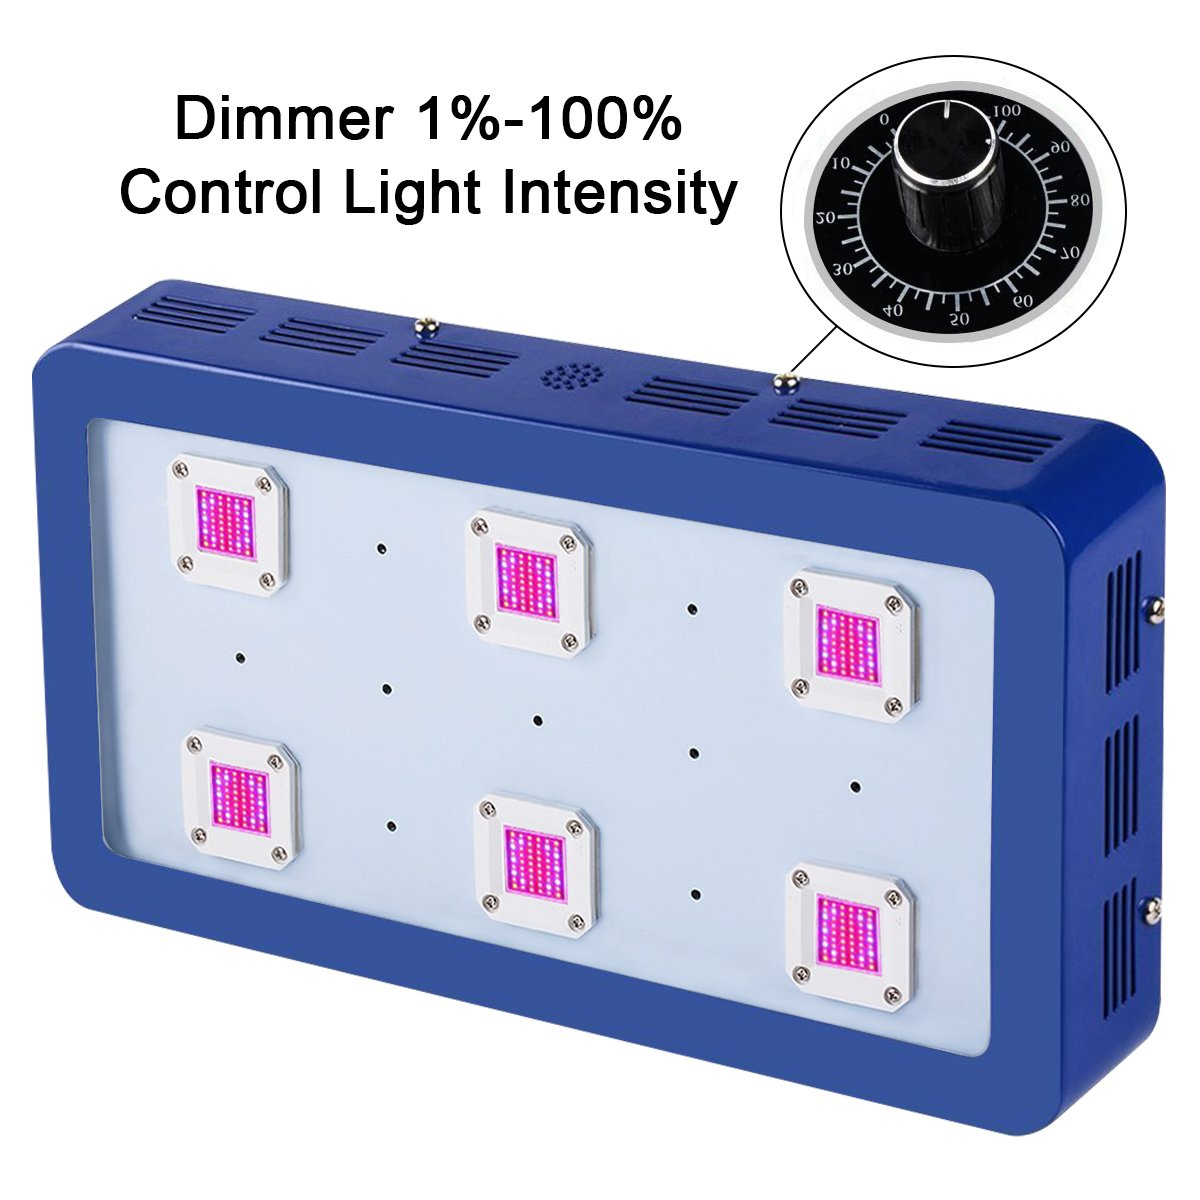 King X6 Dimmable 1800W LED Grow Light Full Spectrum Module Design COB Chips for Greenhouse and Indoor Plant Flowering Growing by KingLED